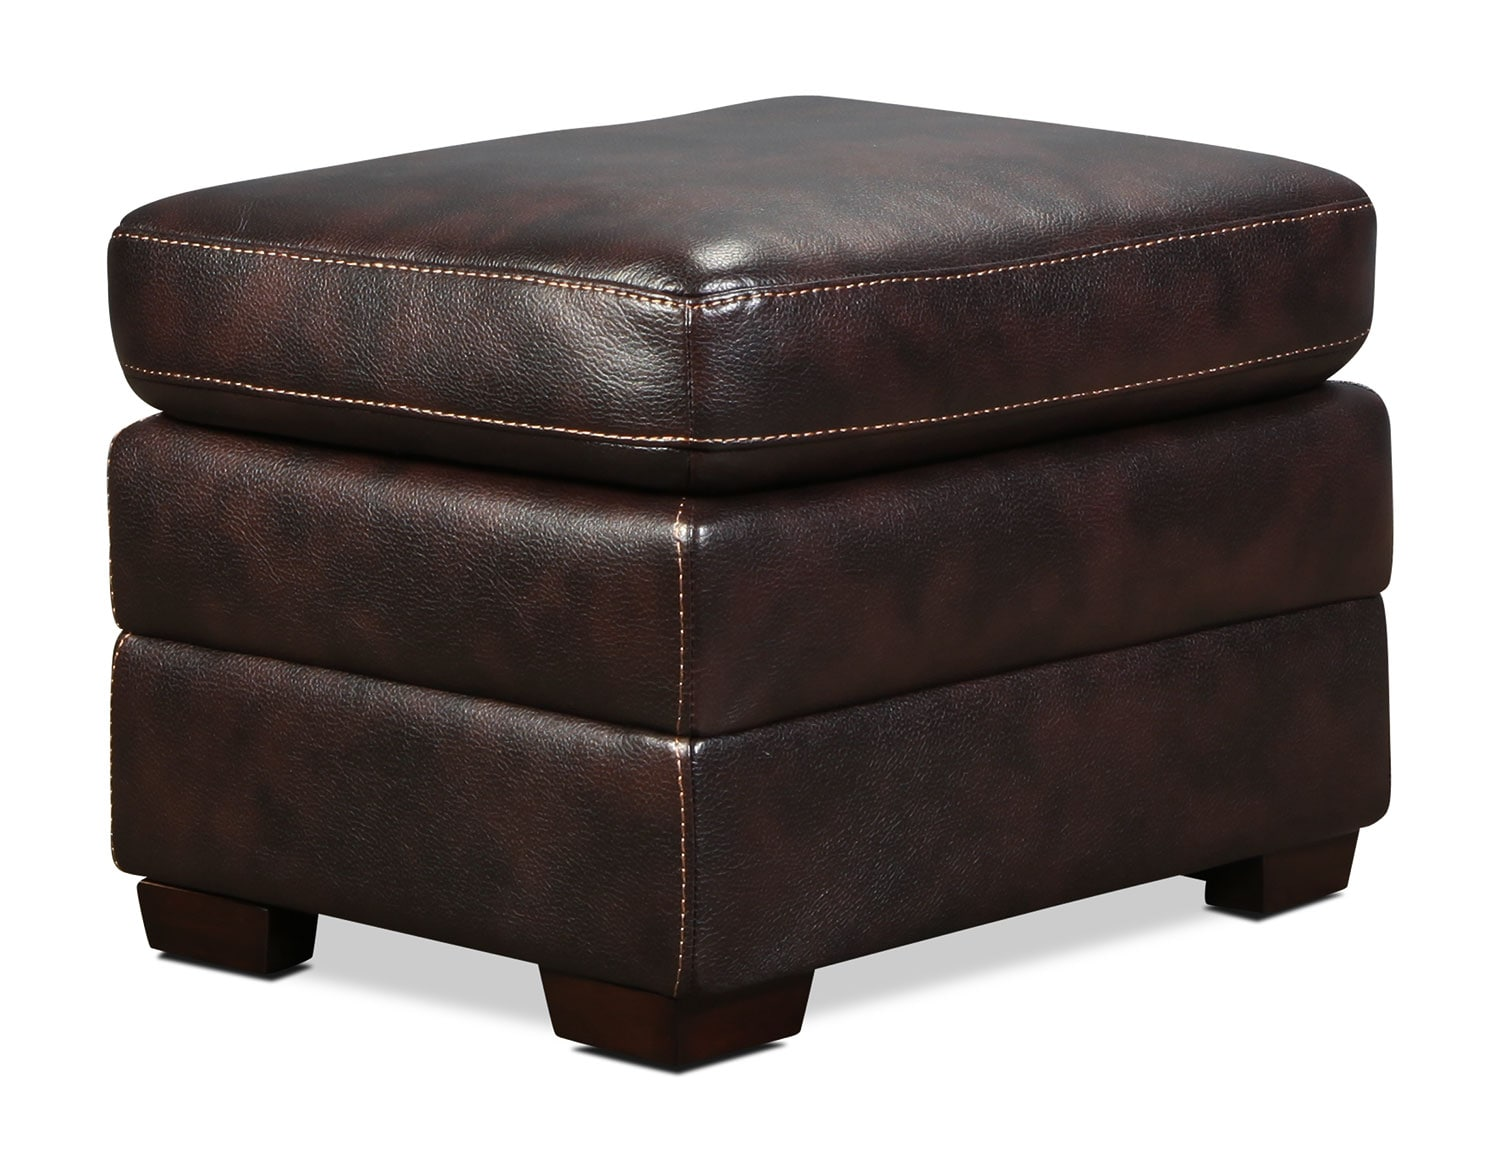 Living Room Furniture - Lytton Ottoman - Brown